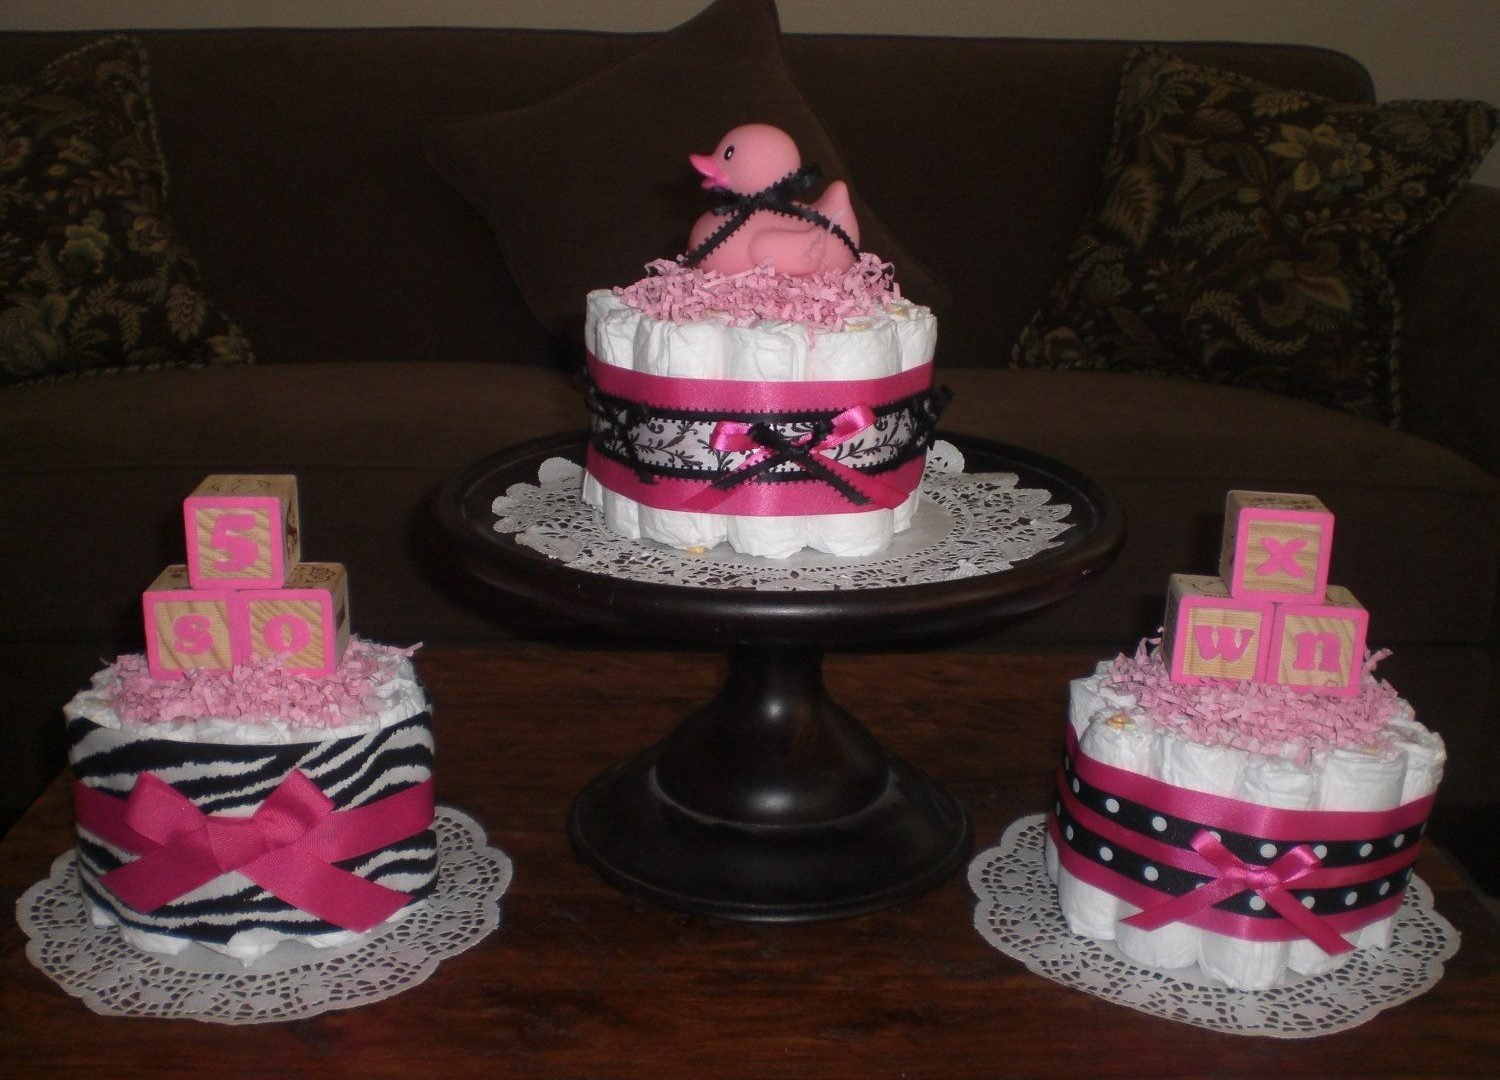 10 Perfect Pink And Black Baby Shower Ideas unforgettable pink and black baby shower ideas zebra print balloons 2021